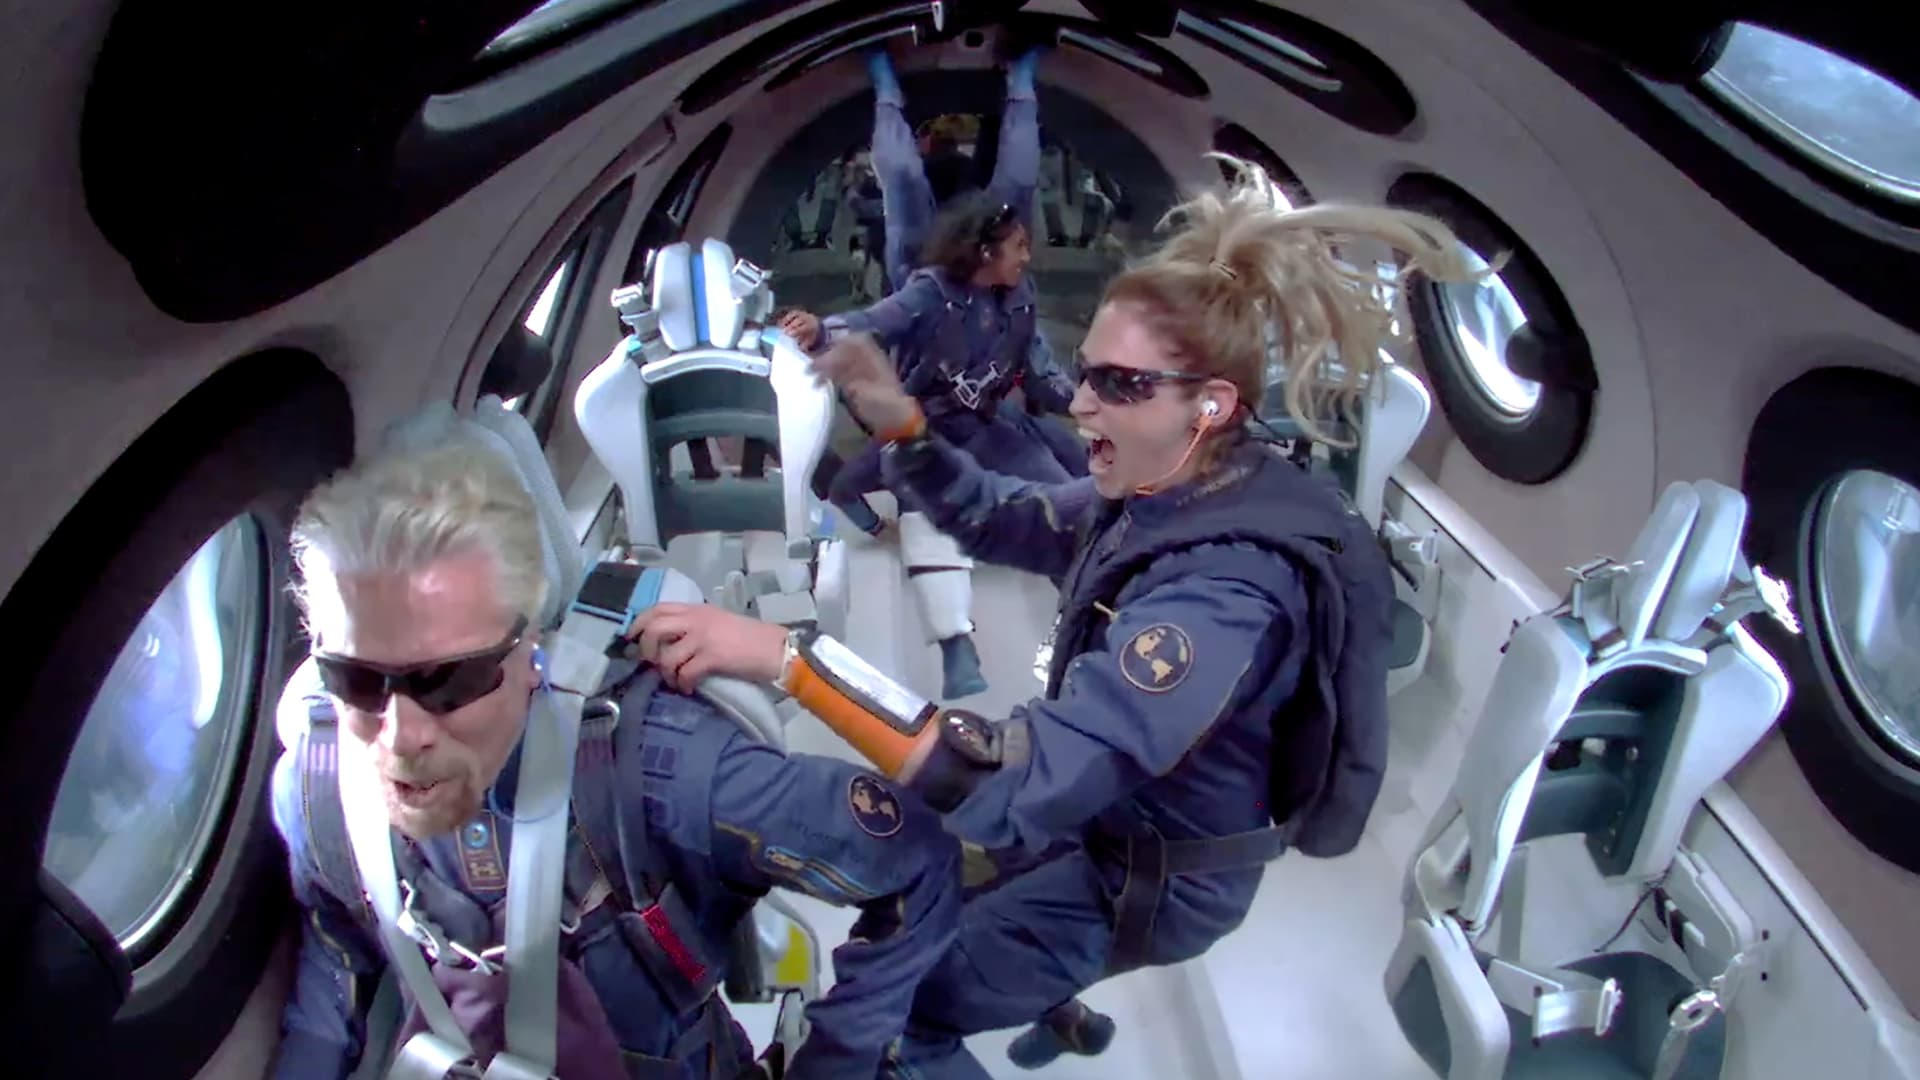 Billionaire Richard Branson makes a statement as crew members Beth Moses and Sirisha Bandla float in zero gravity on board Virgin Galactic's passenger rocket plane VSS Unity after reaching the edge of space above Spaceport America near Truth or Consequences, New Mexico, U.S. July 11, 2021 in a still image from video.